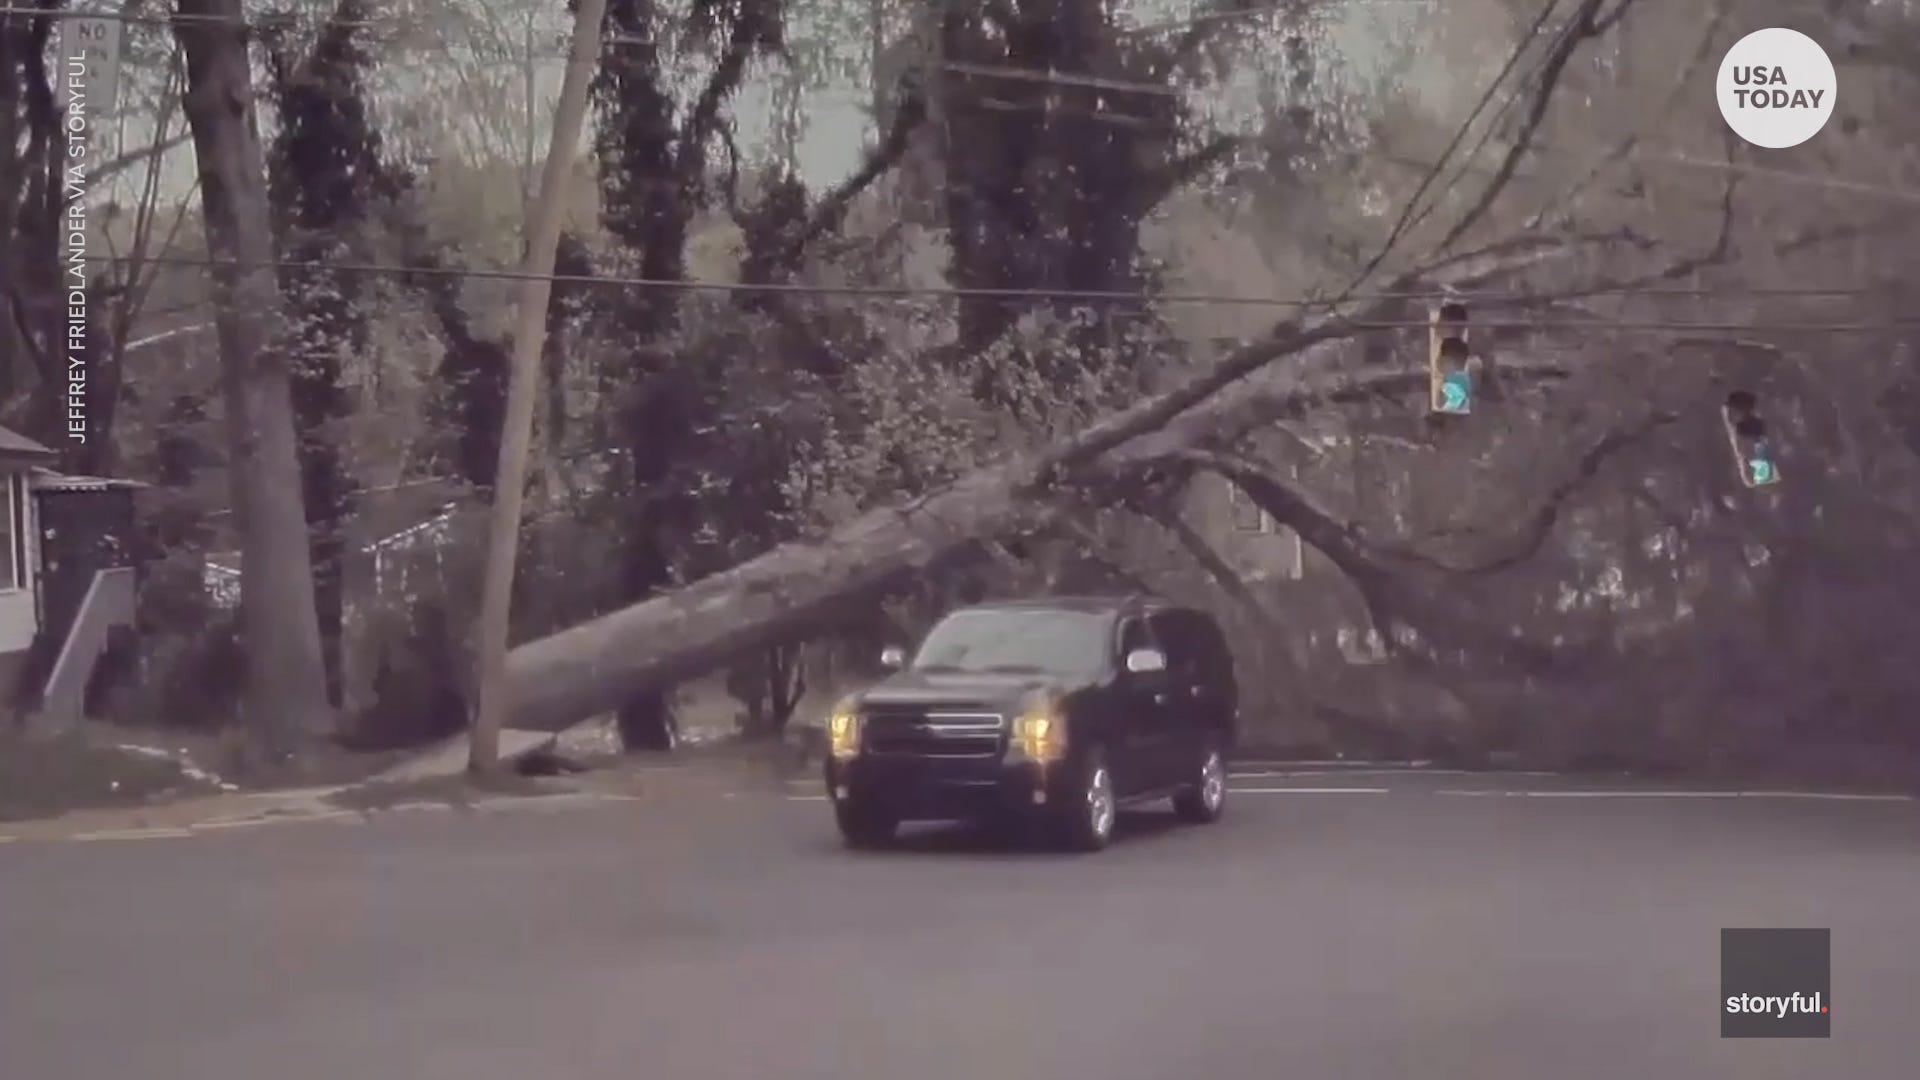 A moving SUV has a very close call with a massive falling tree